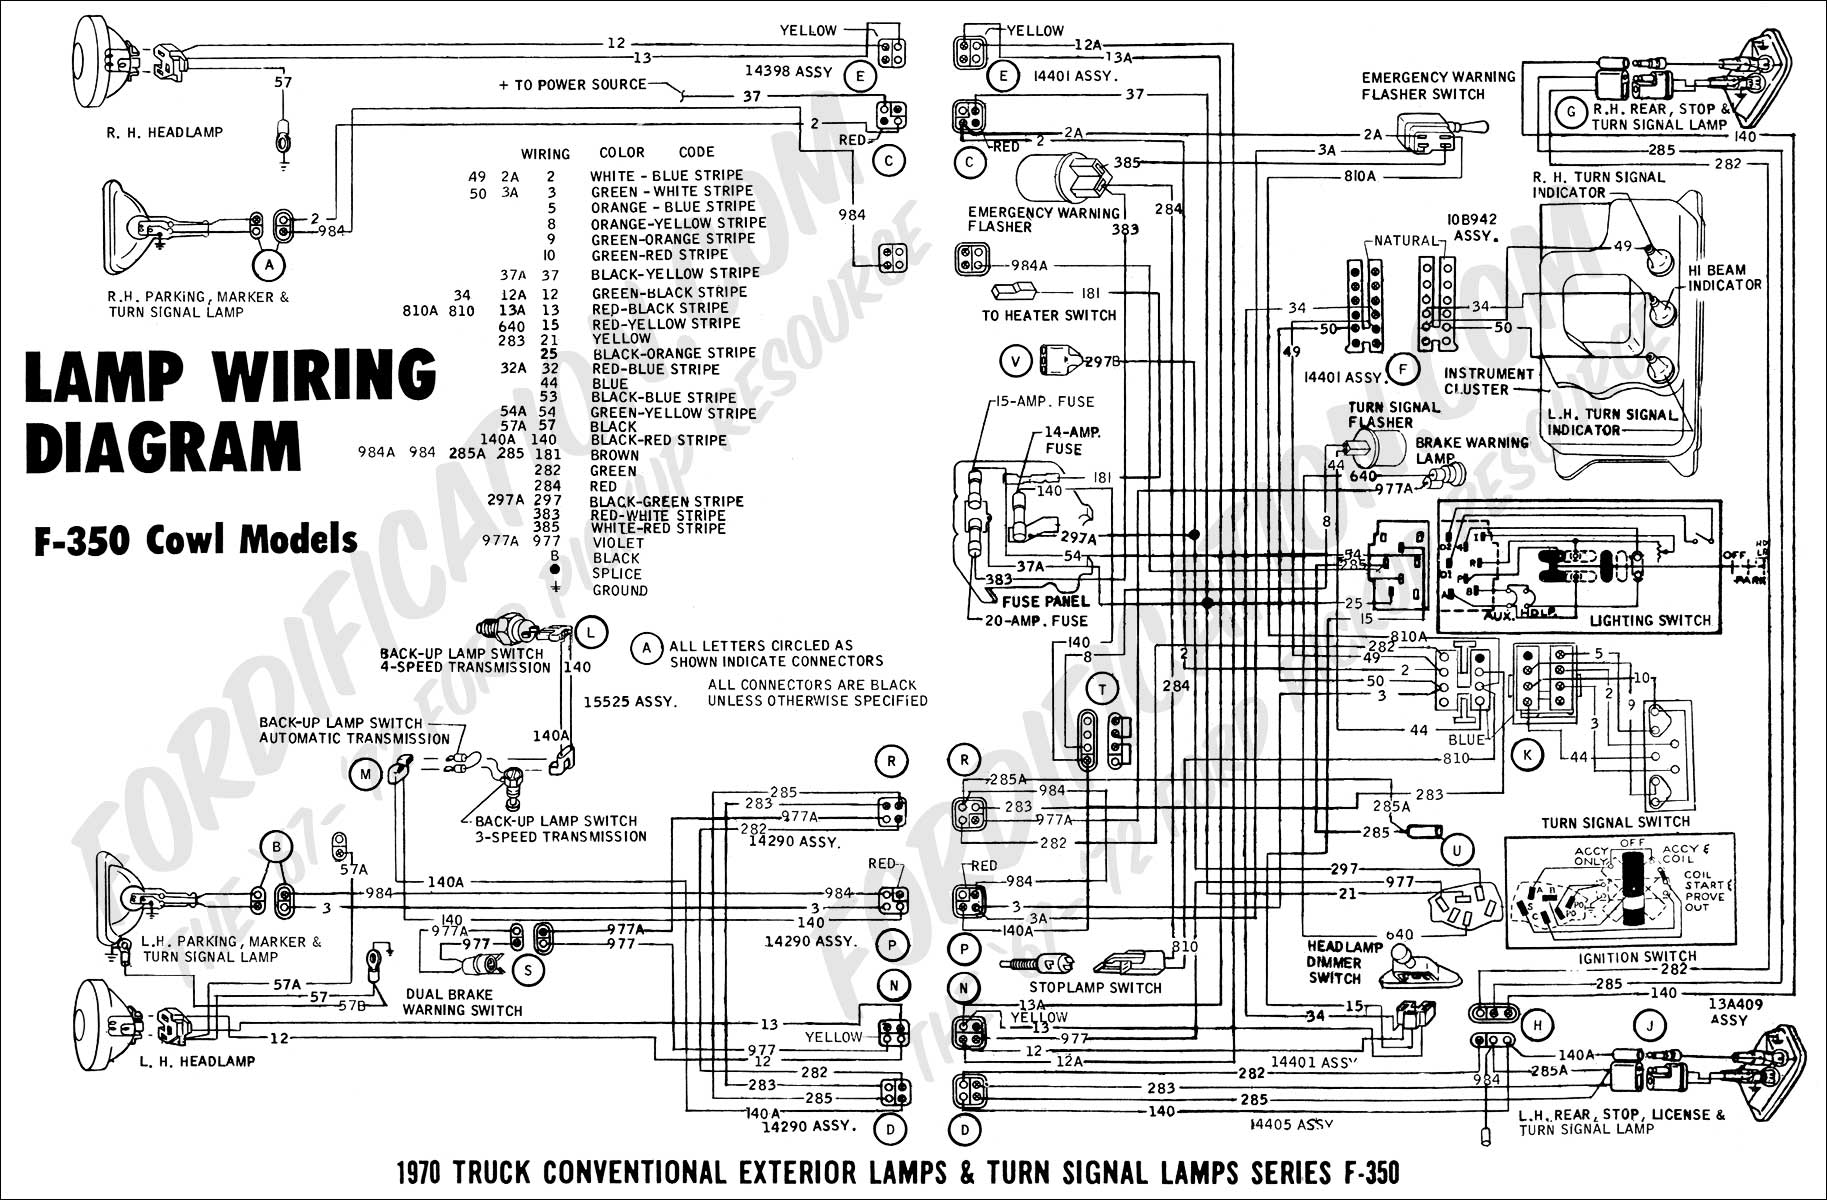 wiring diagram 70F350cowl_lights01 proton wira wiring diagram wiring diagrams forbiddendoctor org on wira fuse box diagram at mifinder.co